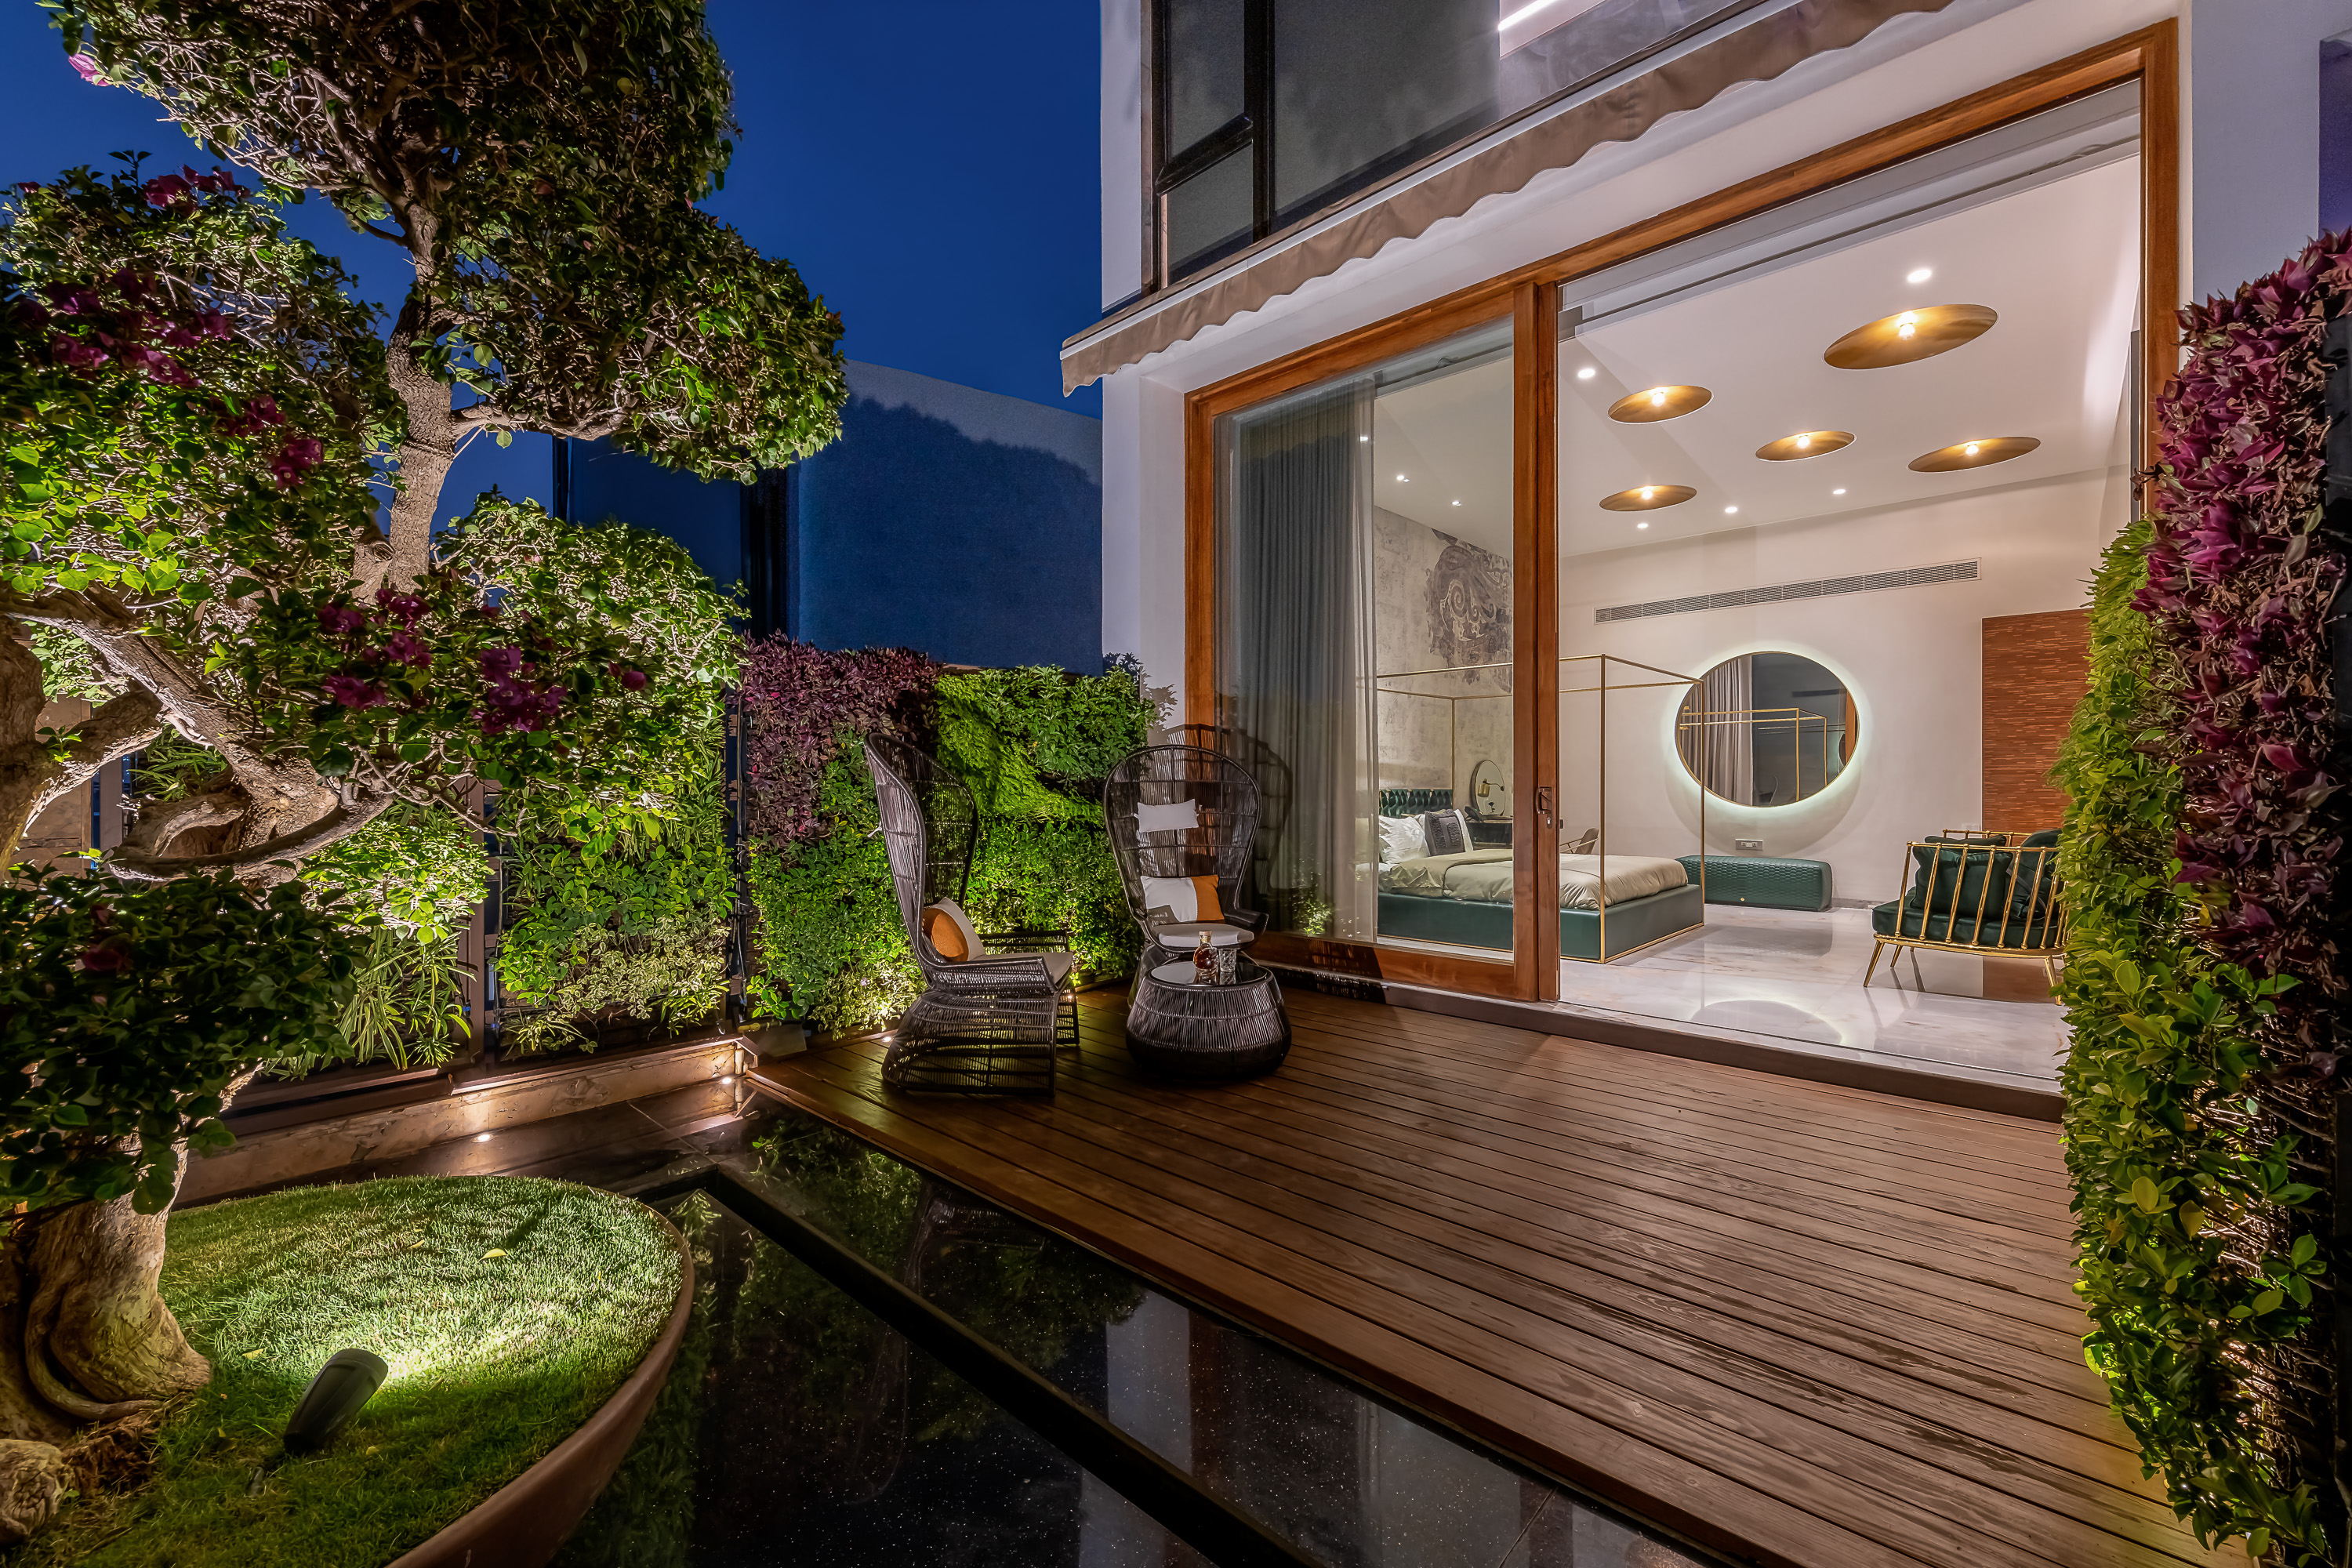 Sustainability Meets Luxury In This Private Residence by NA Architects (5) na architects Sustainability Meets Luxury In This Private Residence by NA Architects Sustainability Meets Luxury In This Private Residence by NA Architects 5